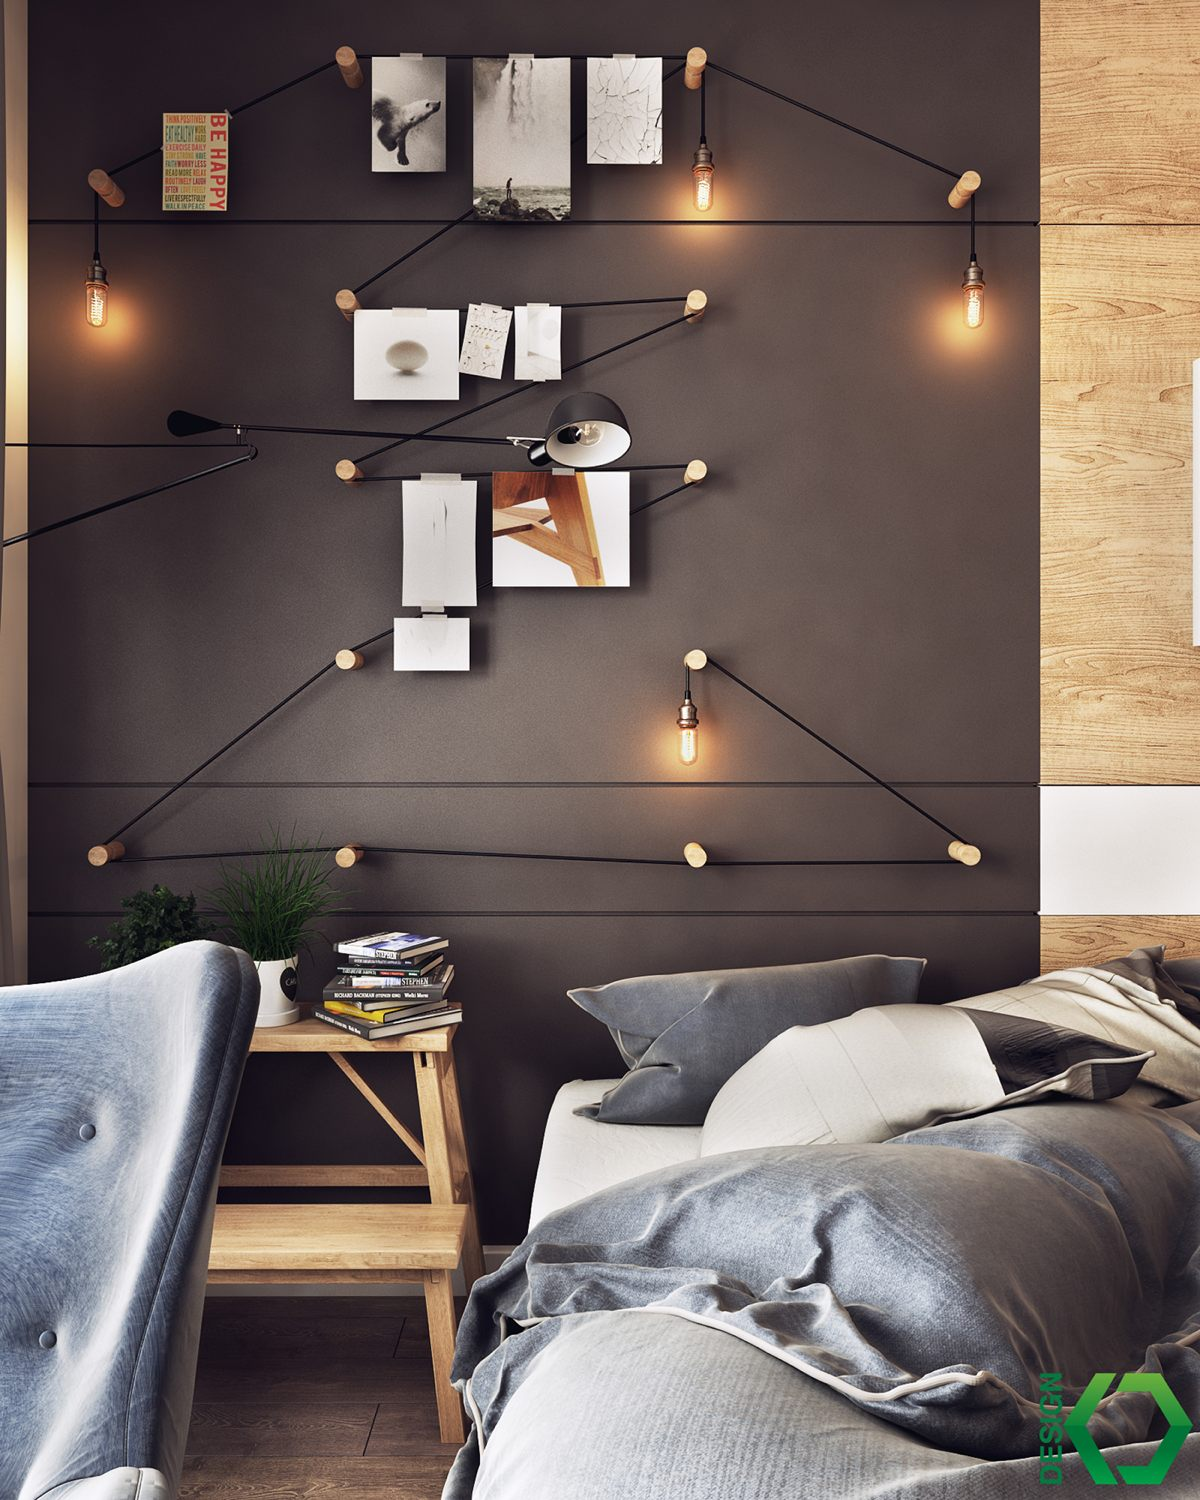 Koj Design Nordic bedroom theme. A Charming Nordic Apartment Interior Design by Koj Design